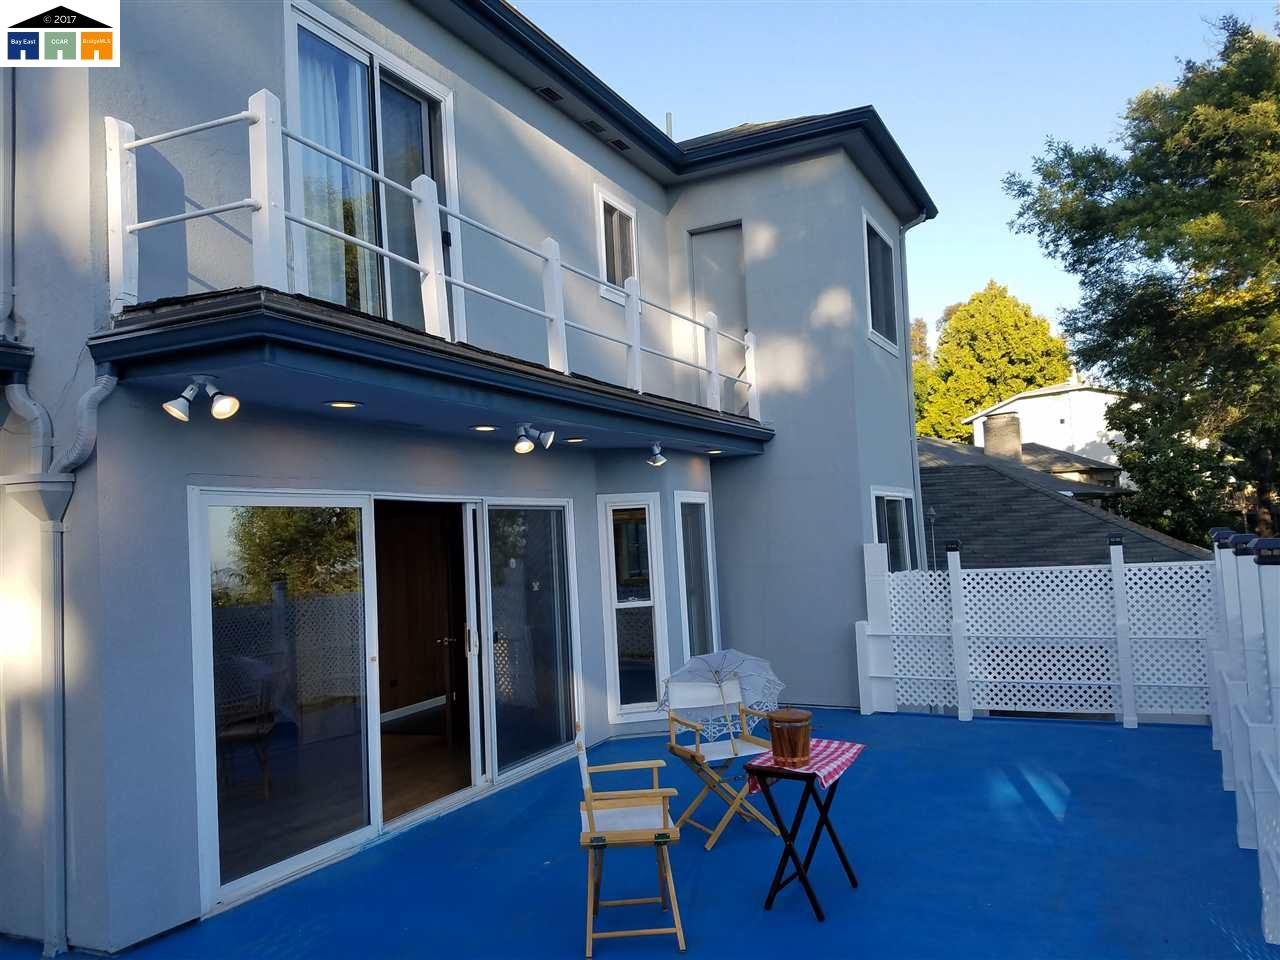 Additional photo for property listing at 3026 Guido Street 3026 Guido Street Oakland, Californie 94602 États-Unis